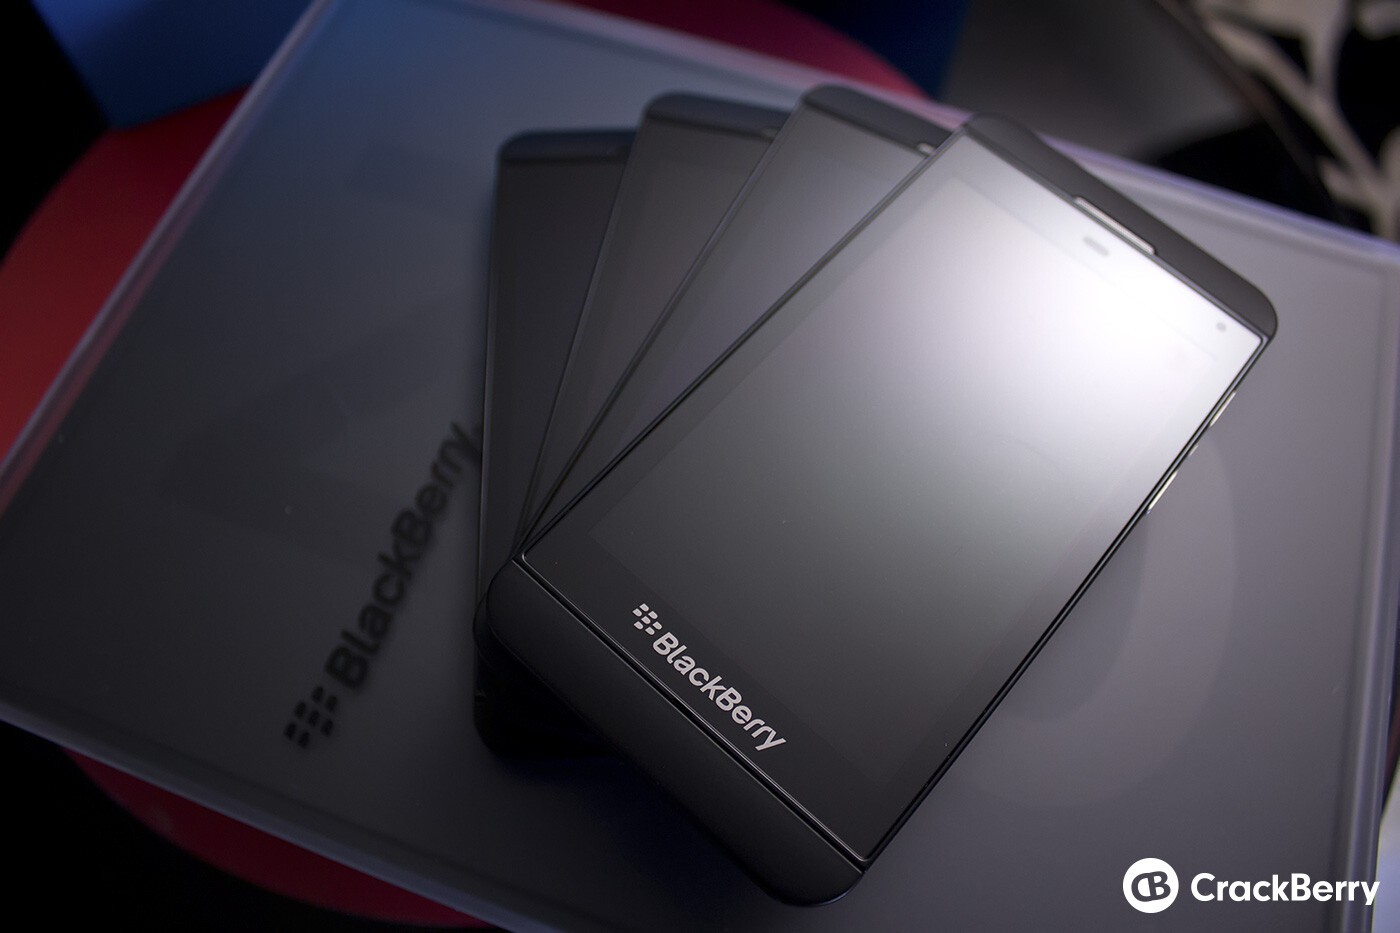 Pile of BlackBerry Z10s